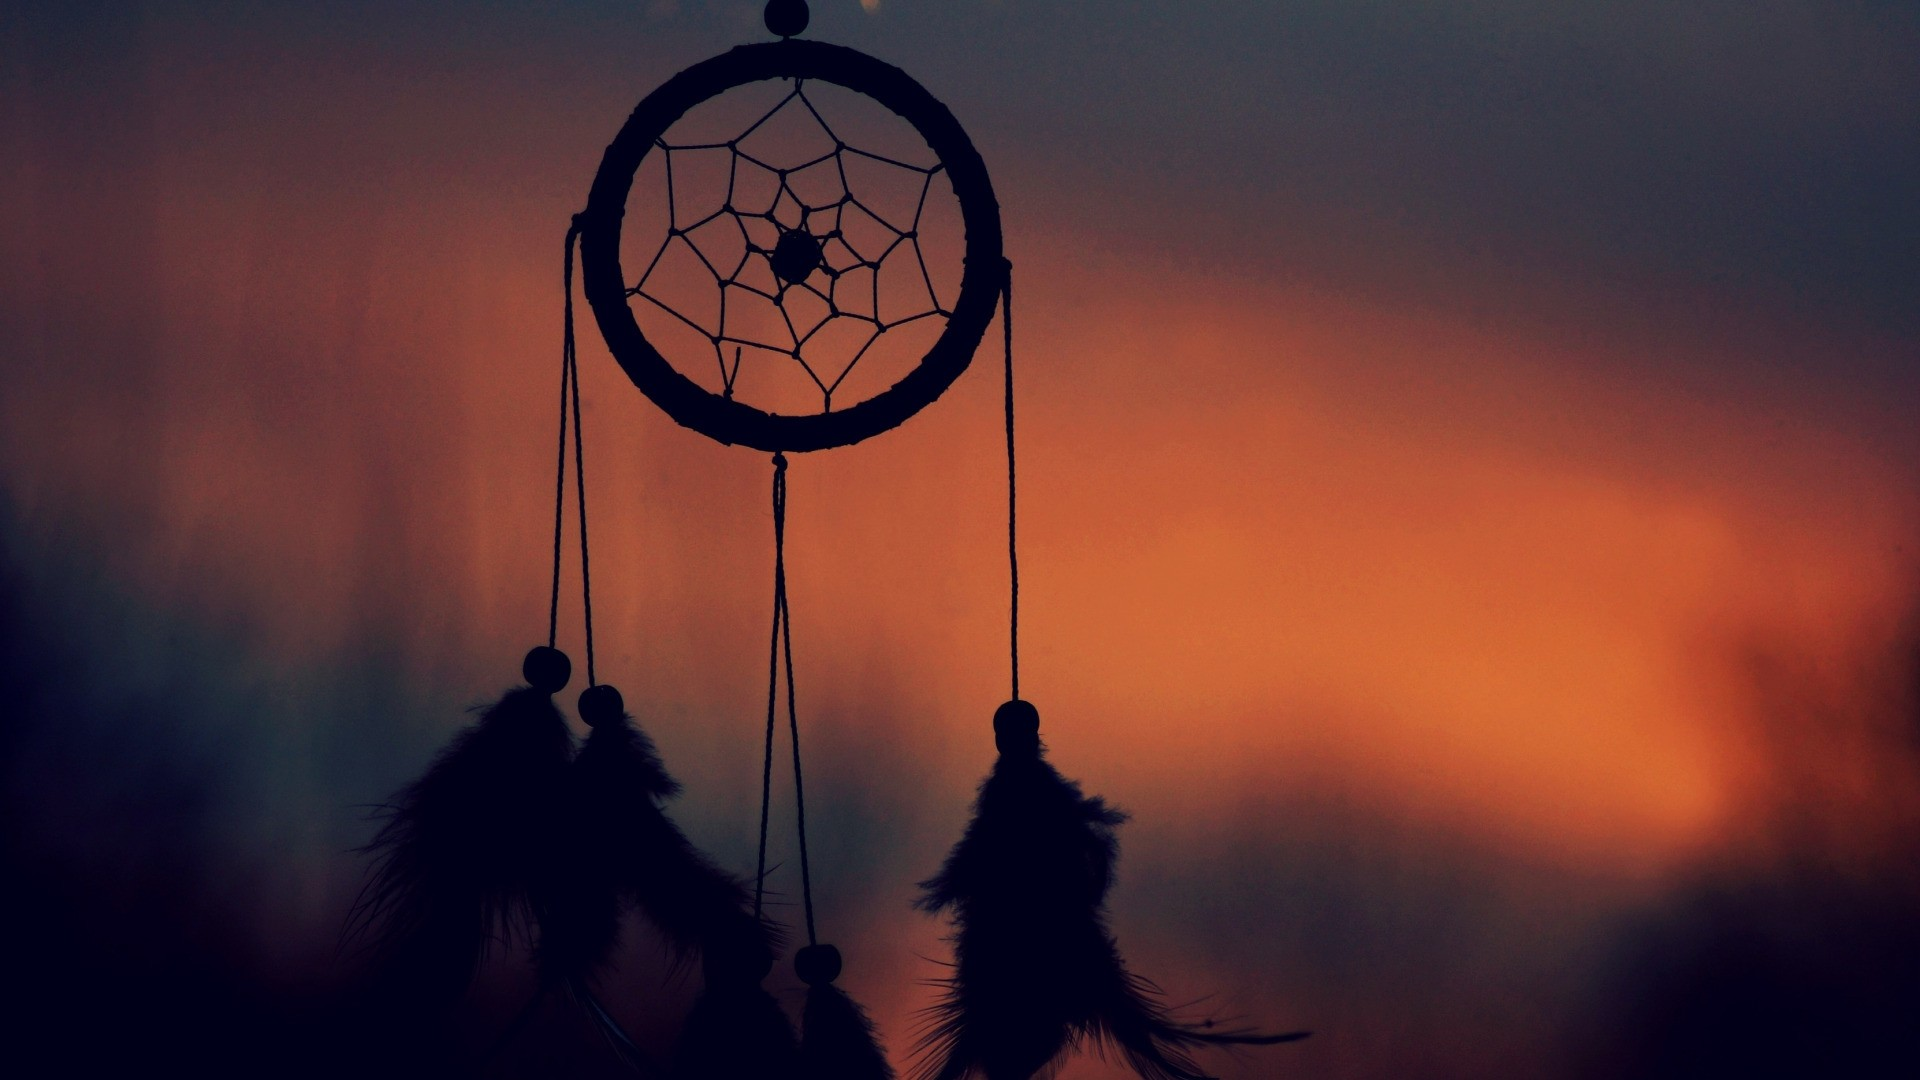 Dreamcatcher Picture